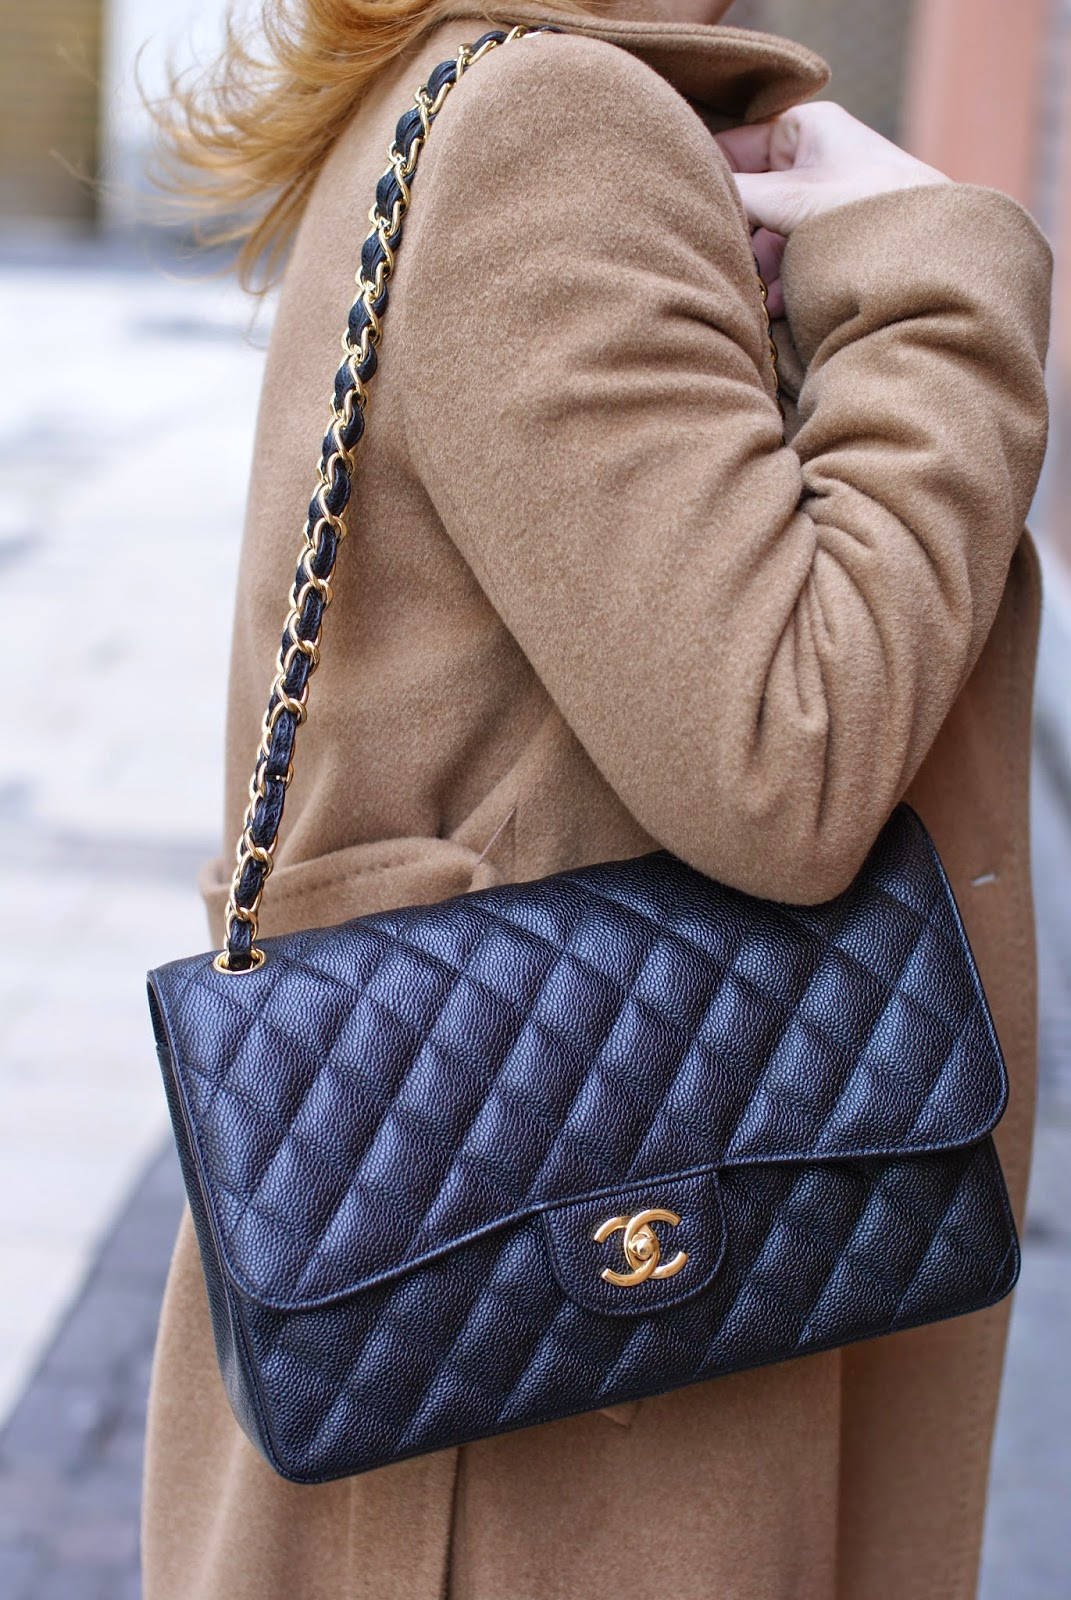 Chanel 2.55 classic flap bag in caviar leather on fashion blogger Vale on Fashion and Cookies fashion blog